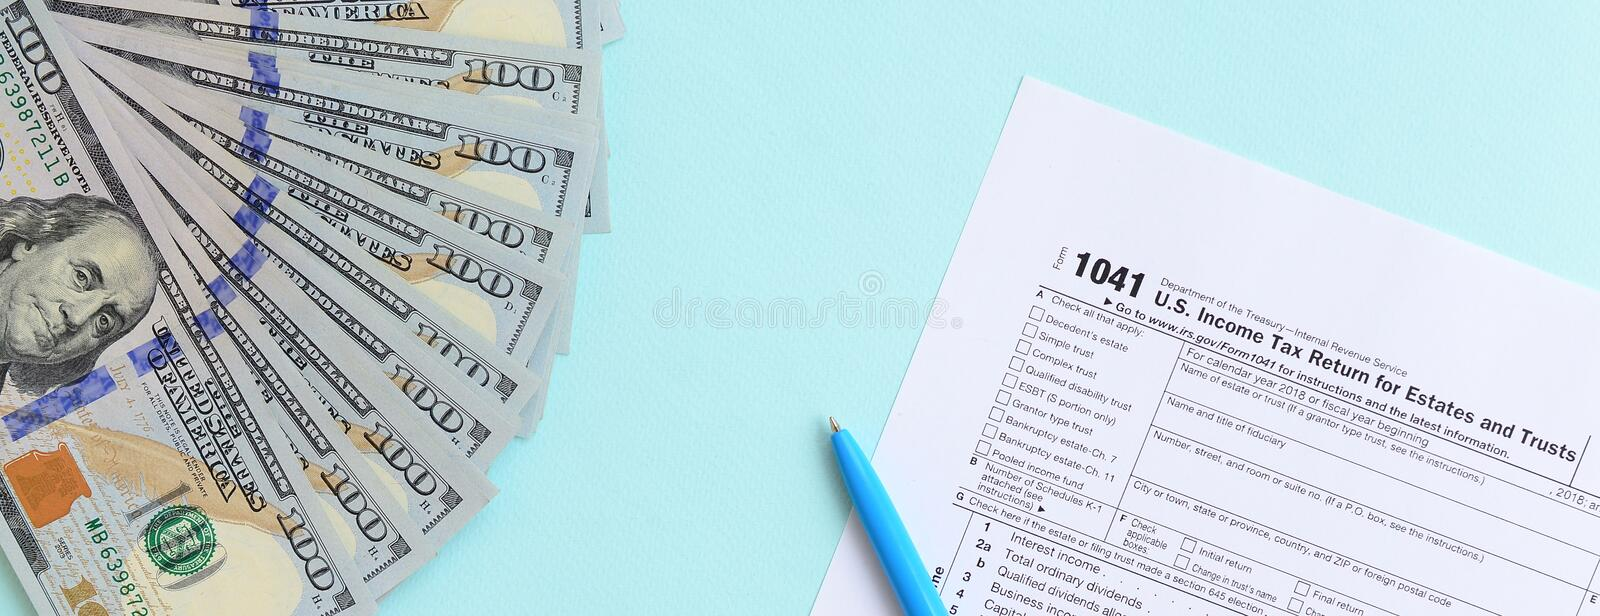 1041 tax form lies near hundred dollar bills and blue pen on a light blue background. US Income tax return for estates and trusts.  royalty free stock image